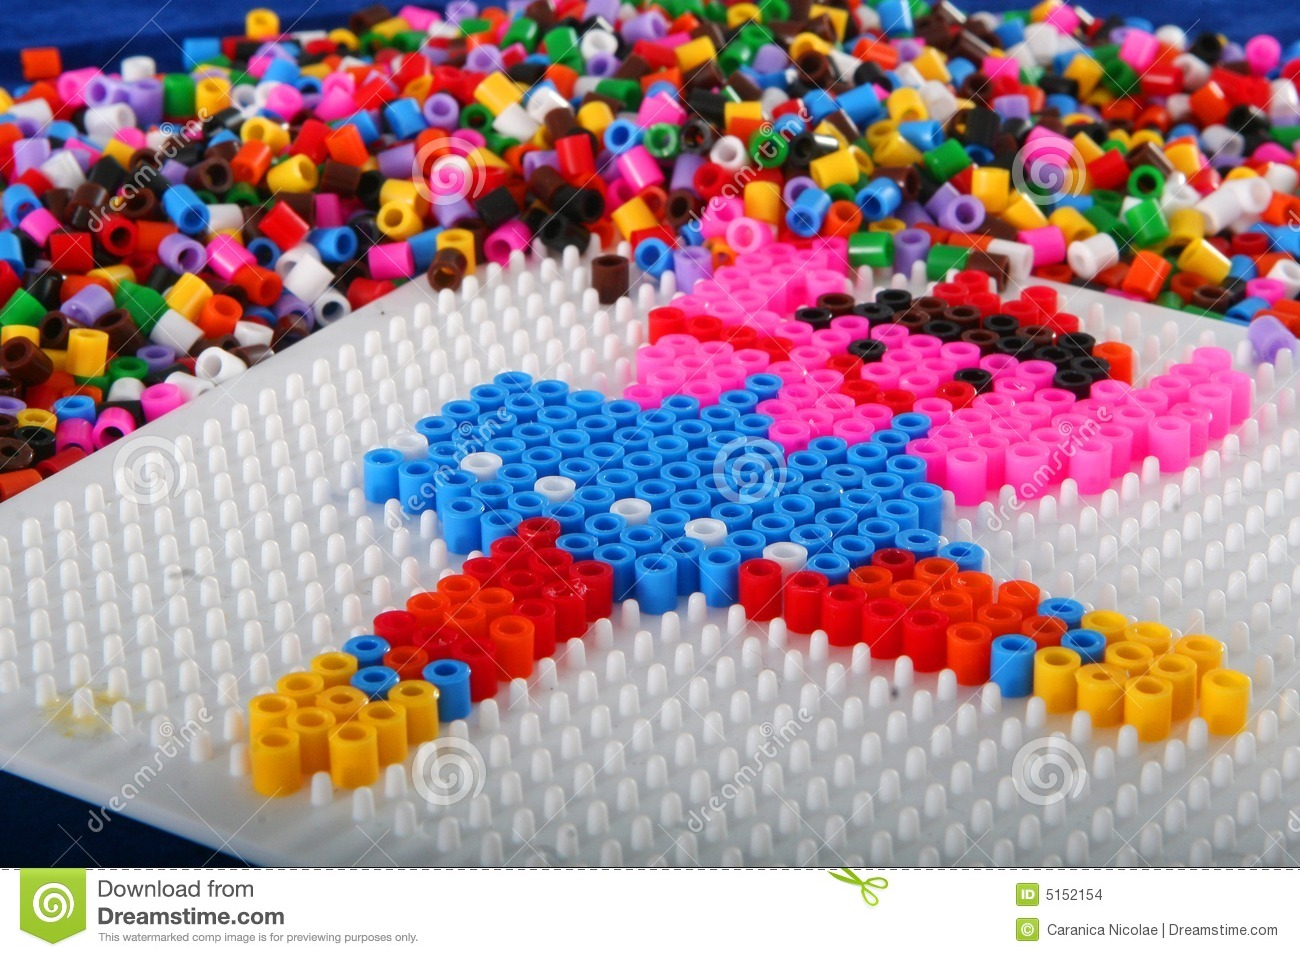 Pegboard and beads craft stock images image 5152154 for Beads for craft projects